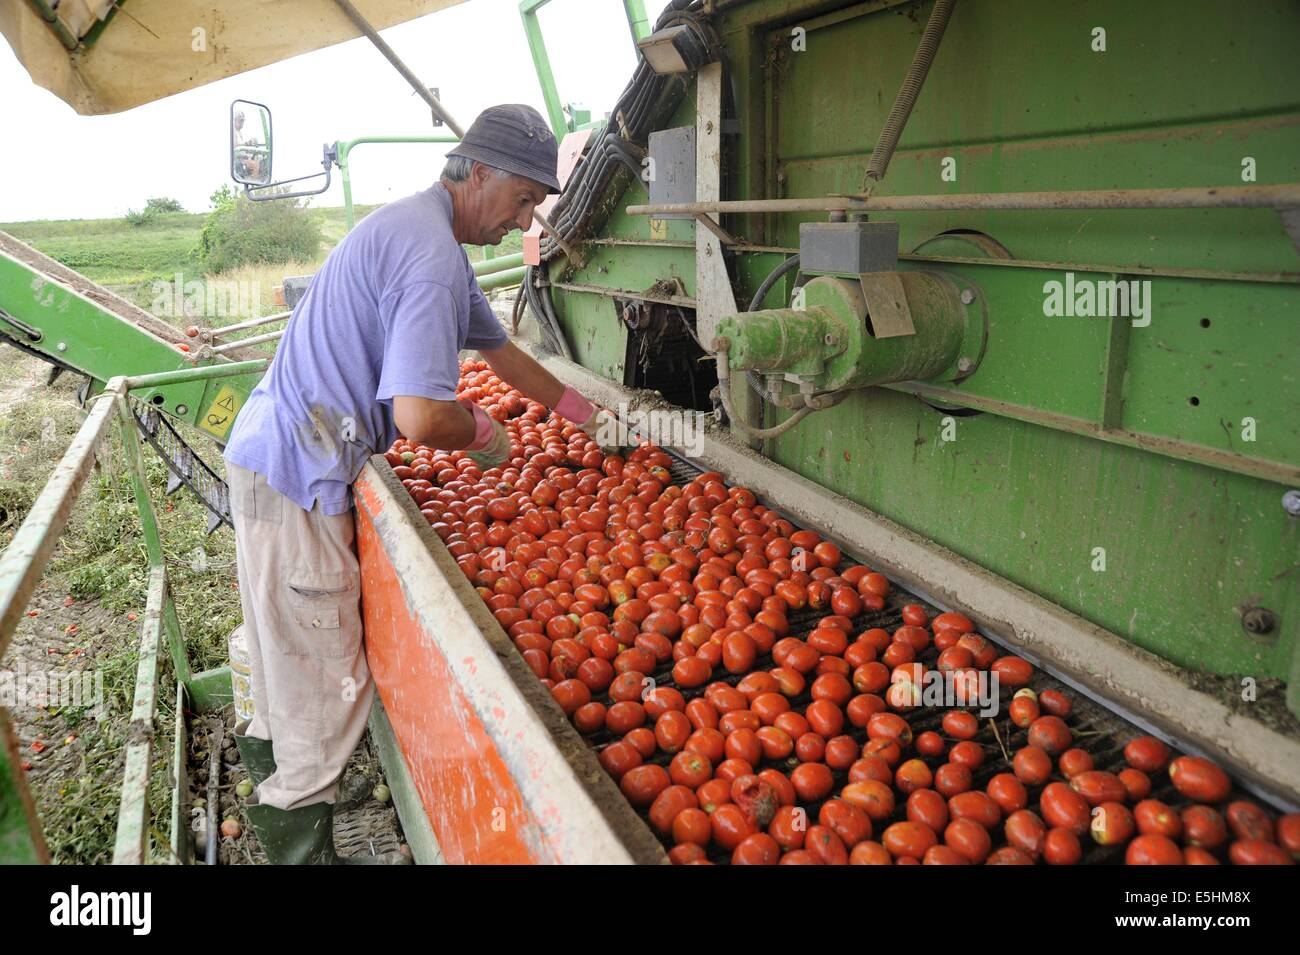 tomatoes automated harvesting in the province of Piacenza (Italy) - Stock Image